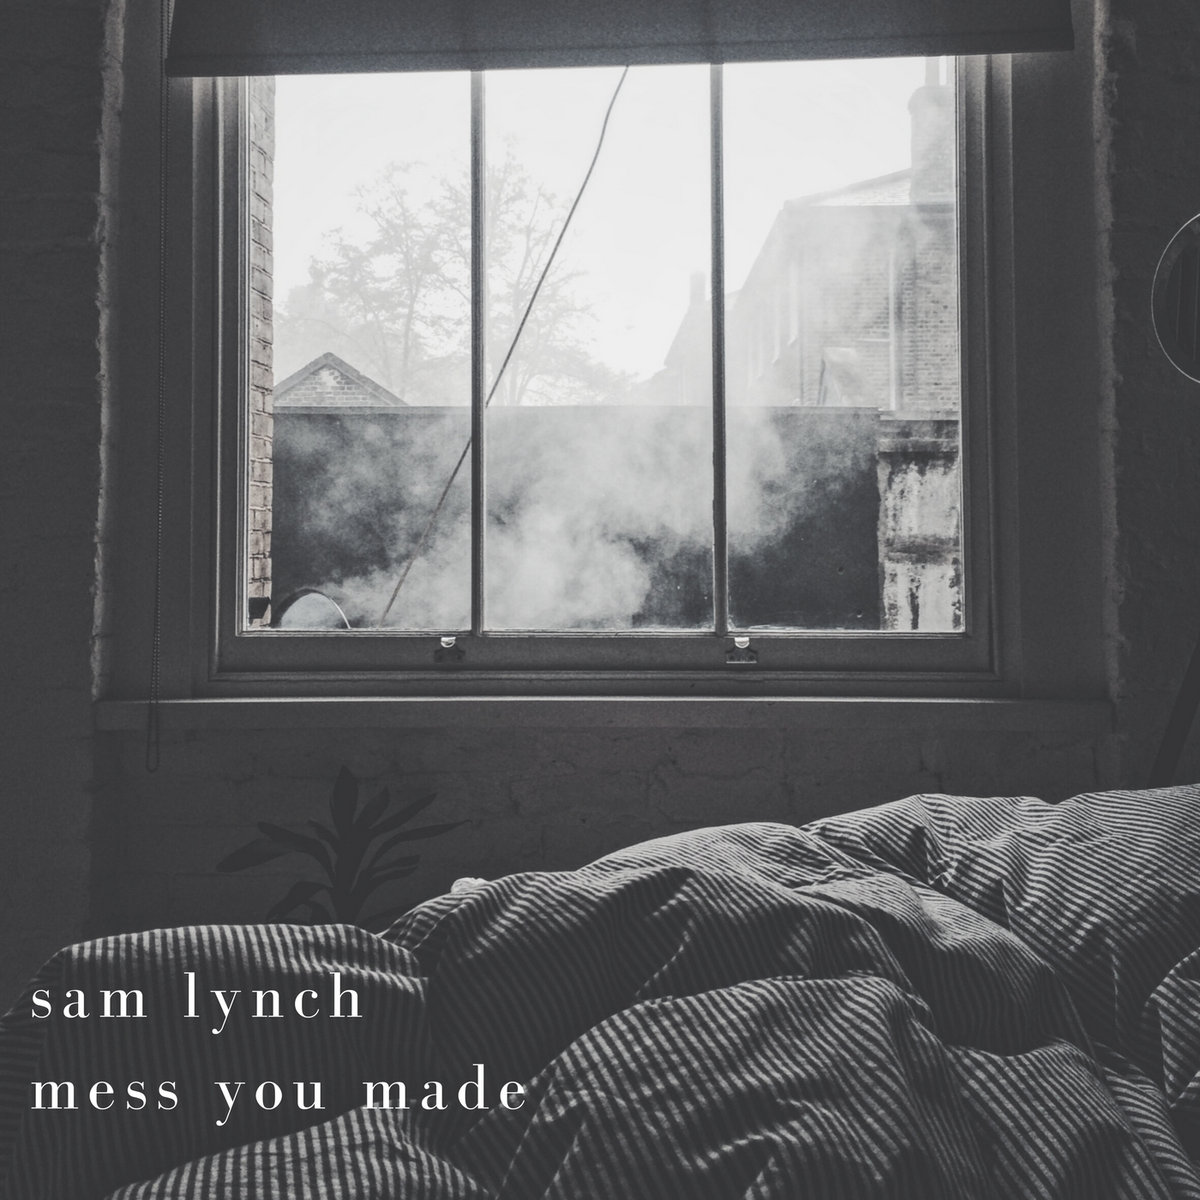 Sam Lynch - Mess You Made